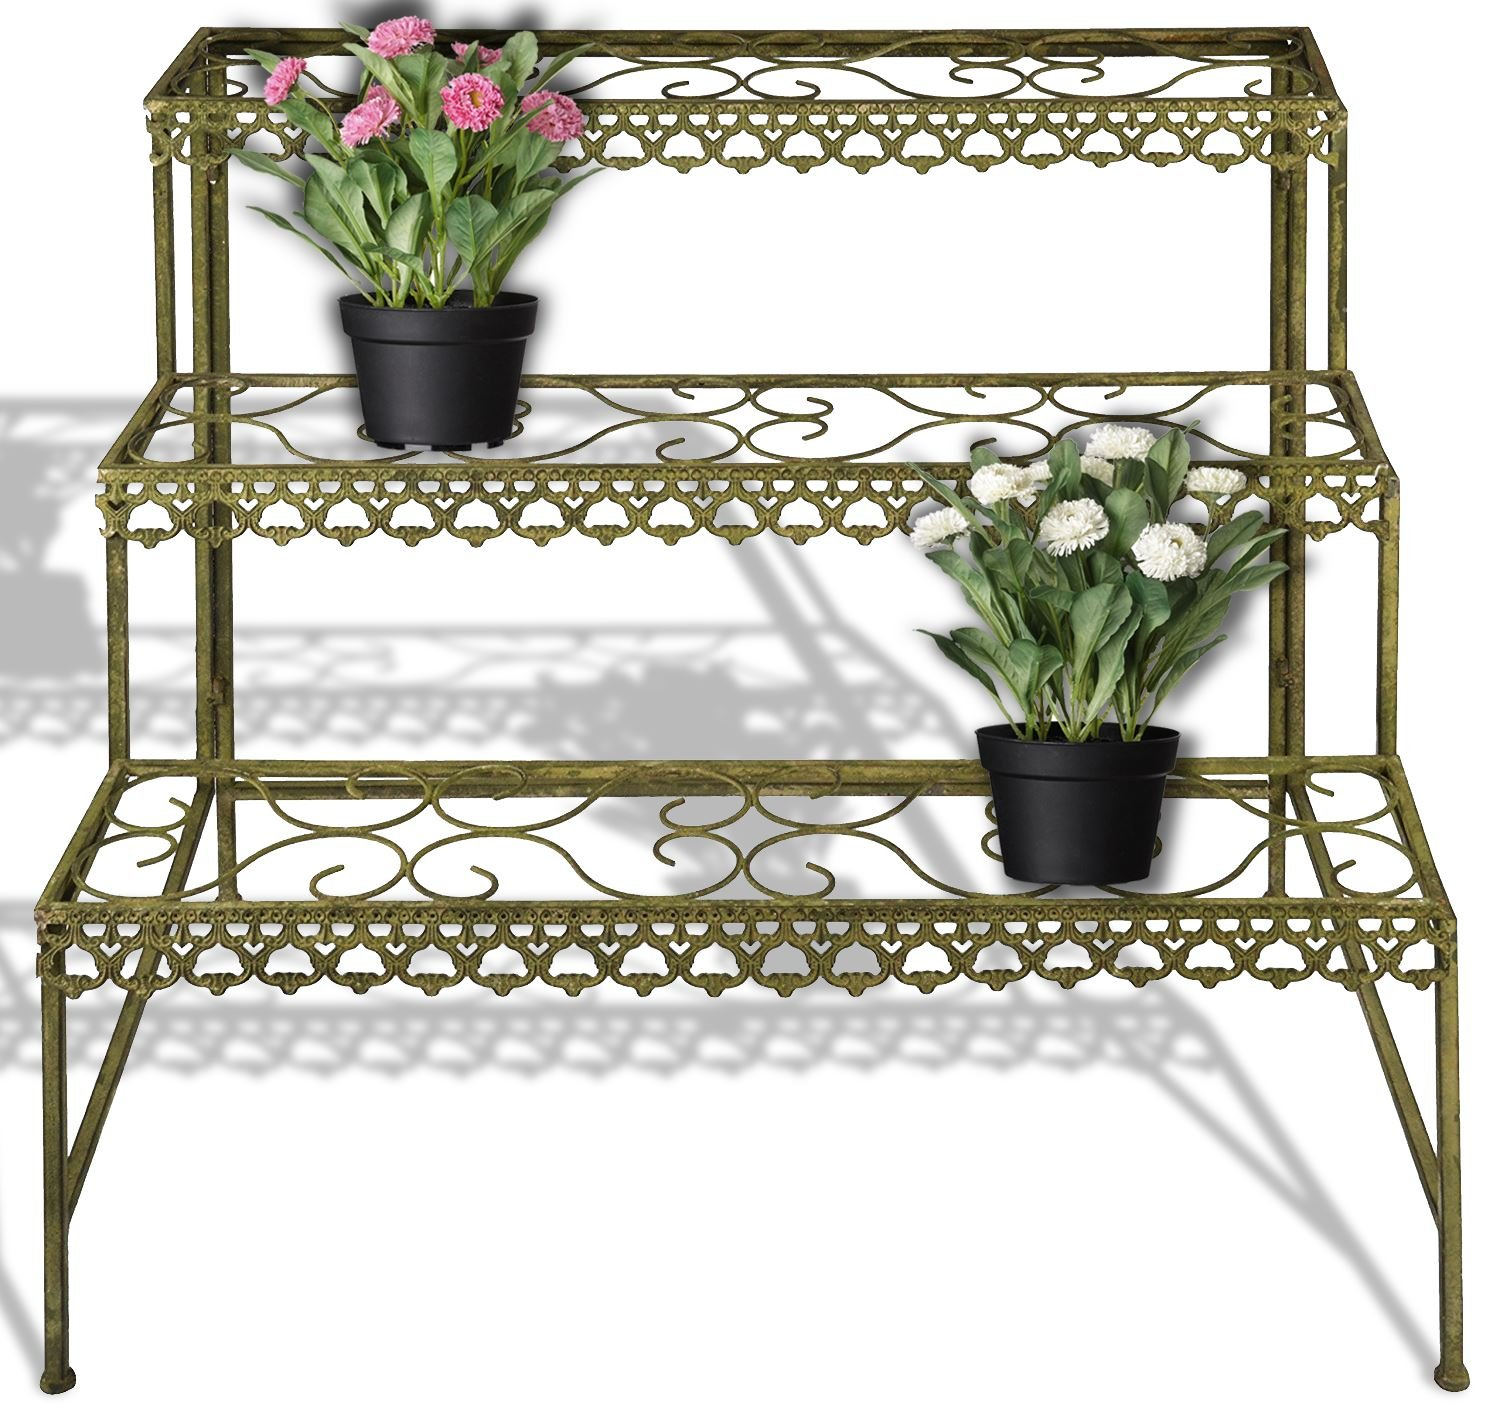 Fallen Fruits Metal Plant Stand Etagere 3 Tier in Green - AM76